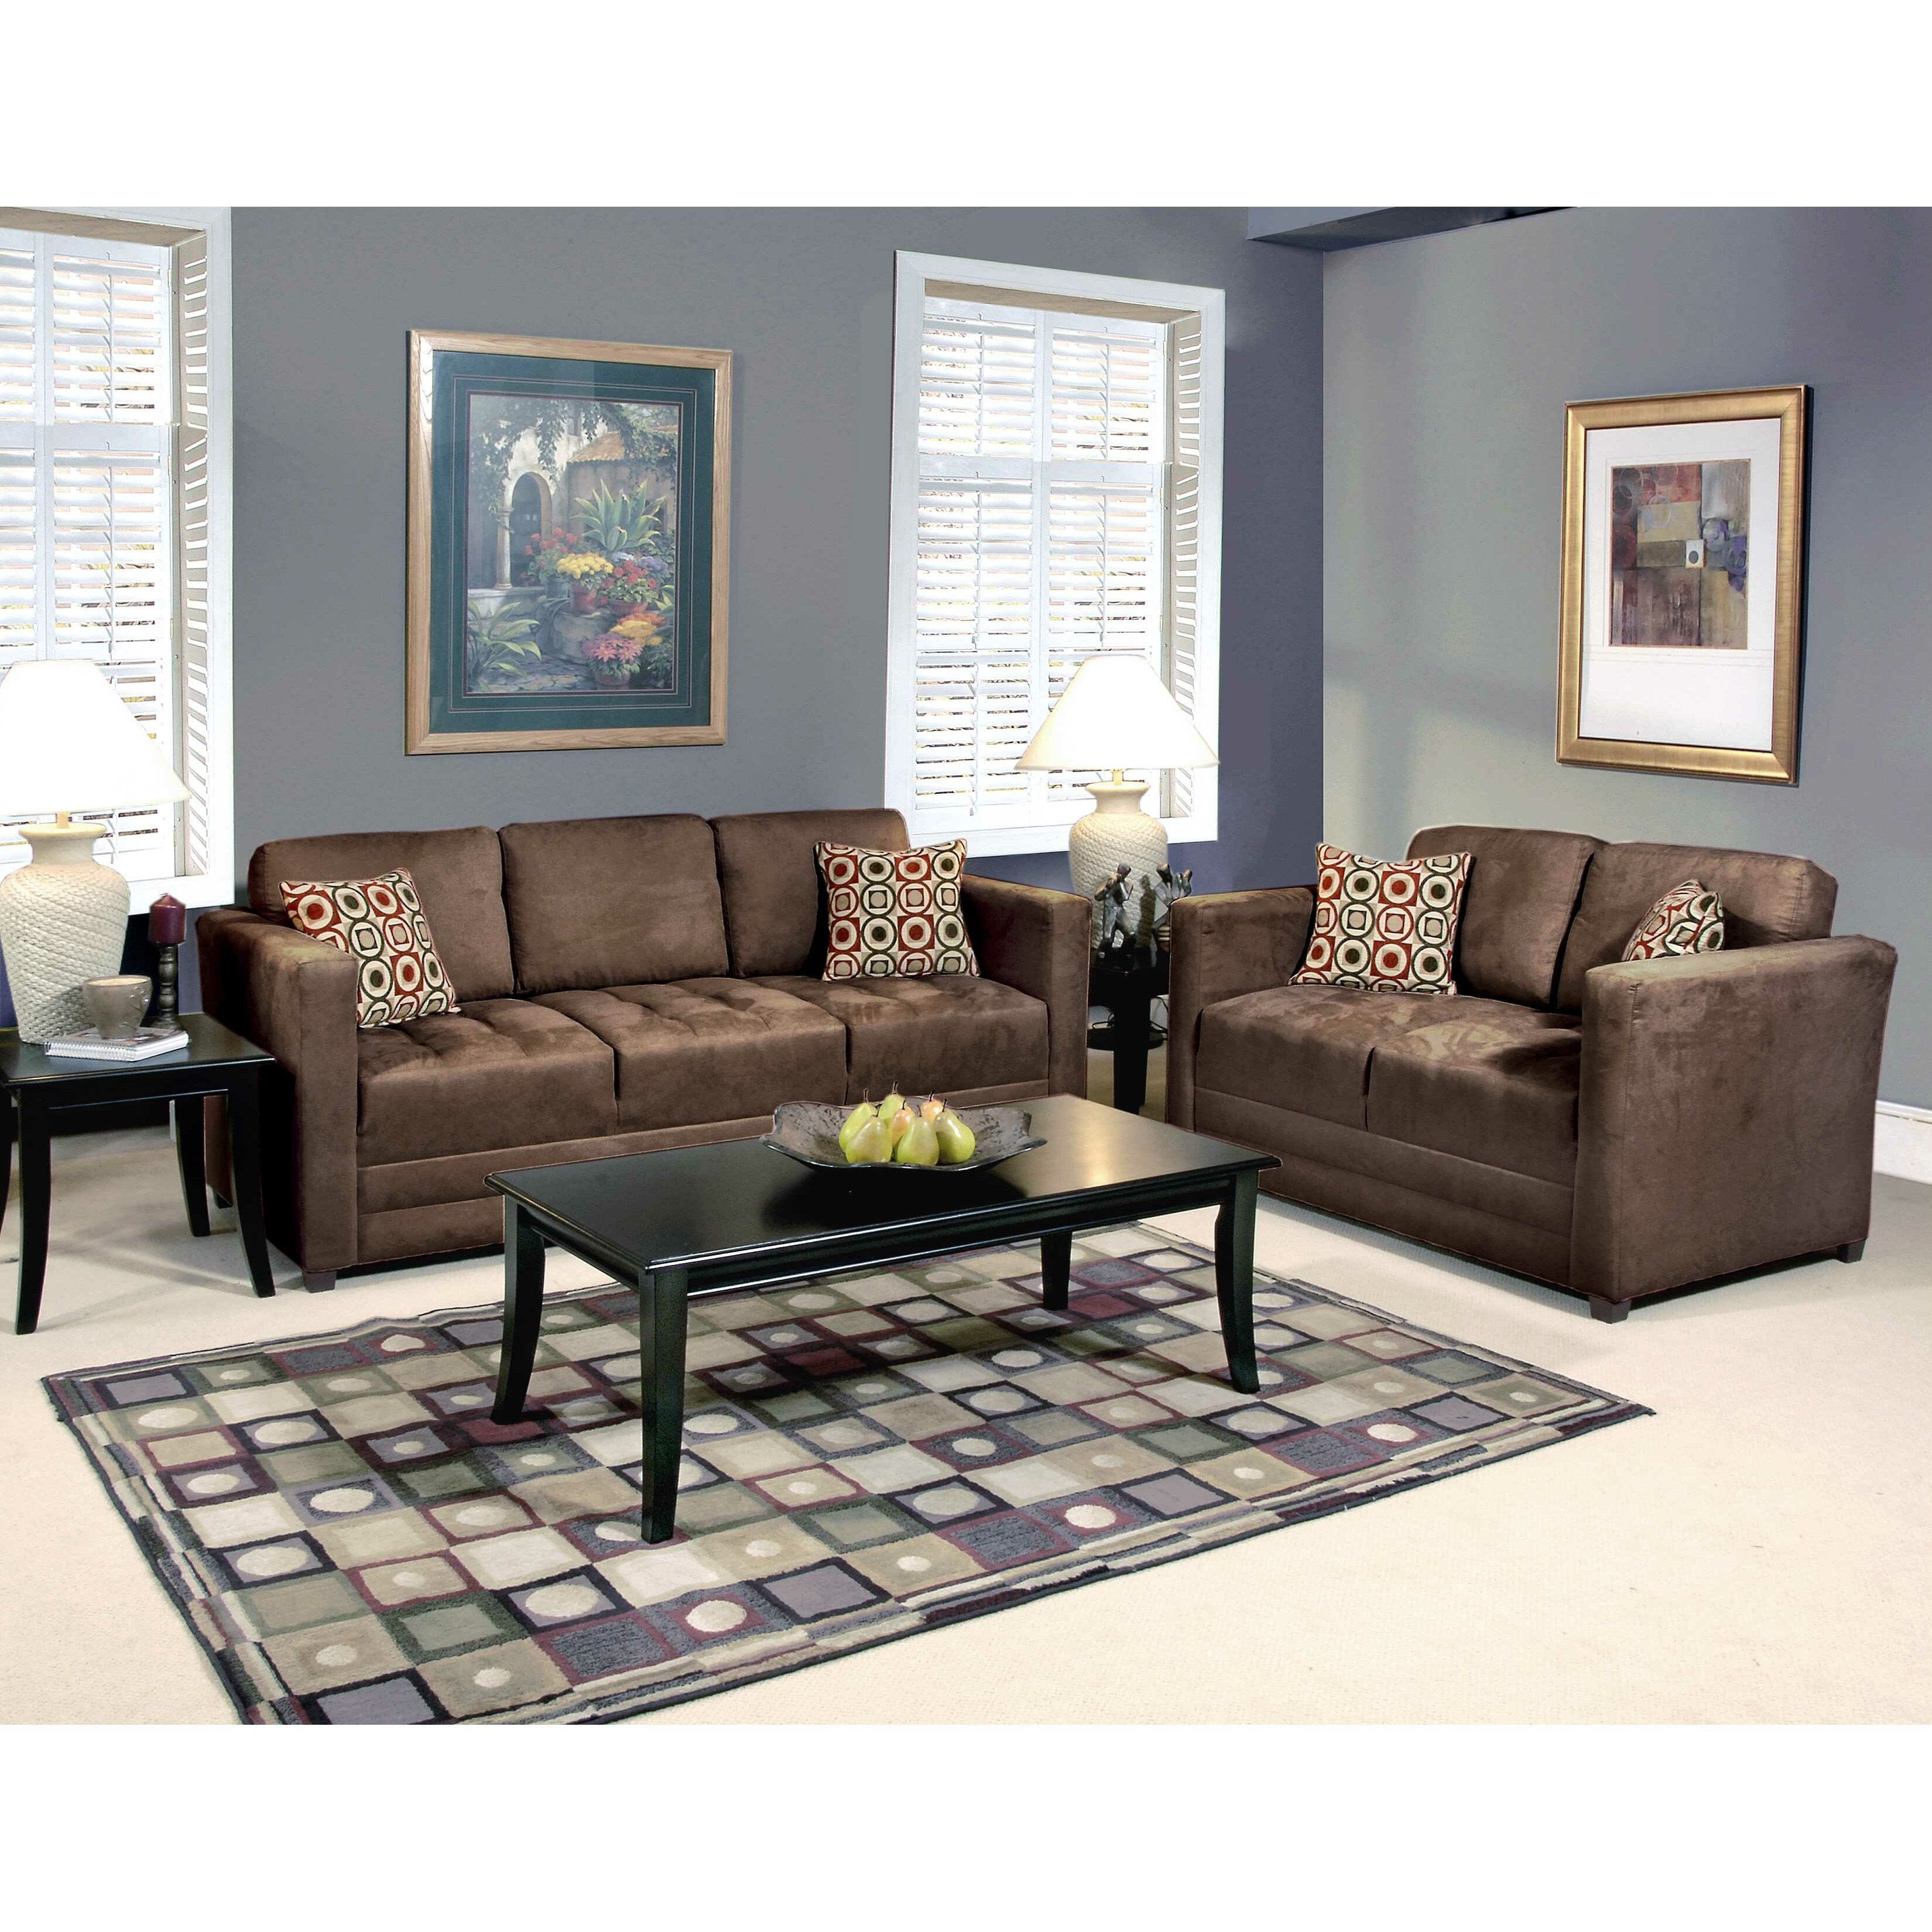 1085 Best Images About Bedroom Furniture On Pinterest: Latitude Run Living Room Collection & Reviews